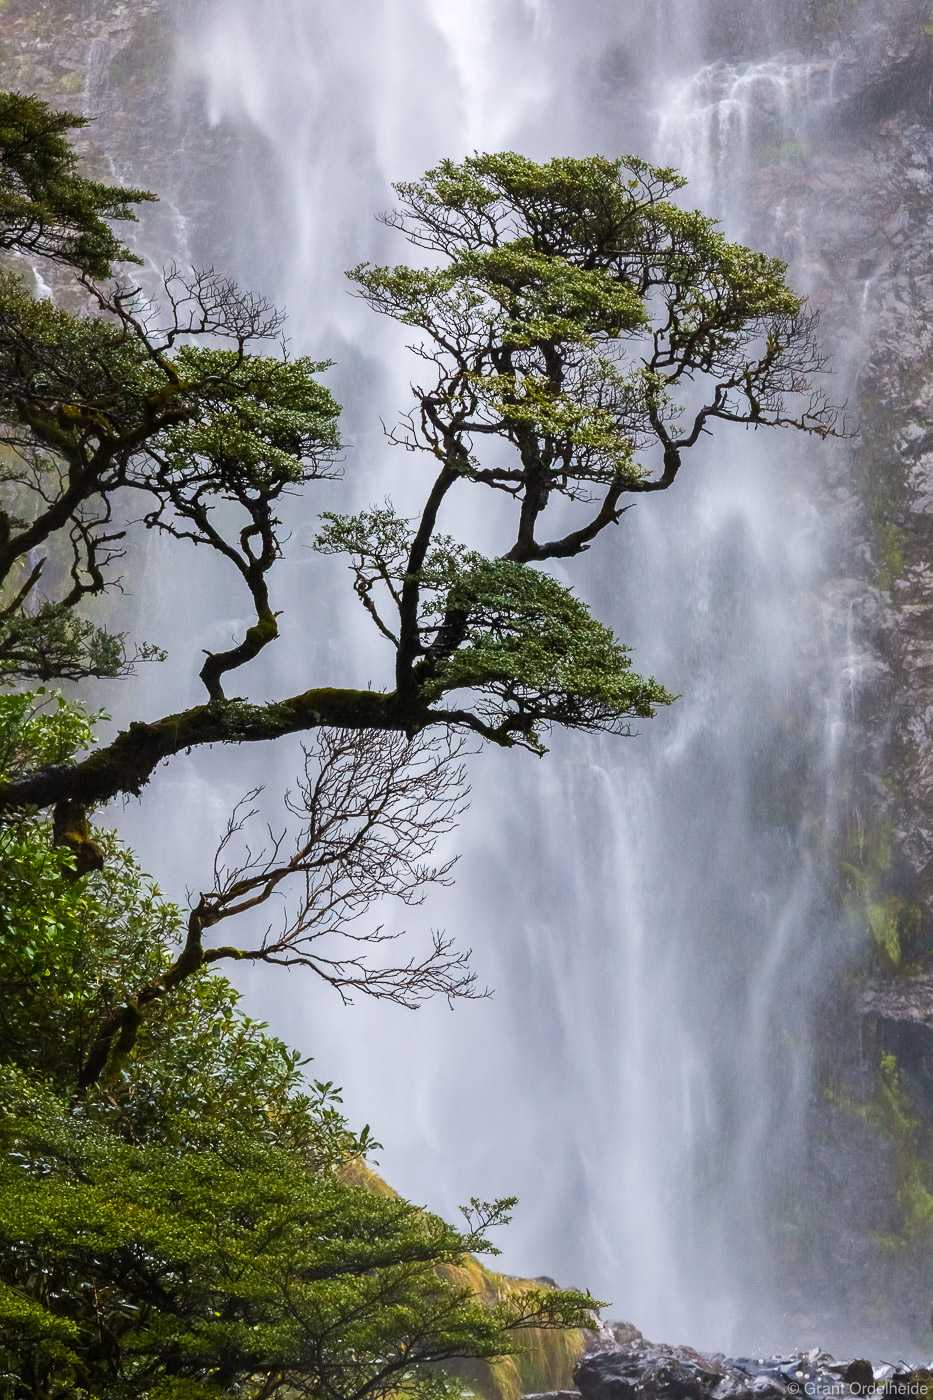 punchbowl, falls, arthur's, pass, new, zealand, lone, tree, devils, south, island,, photo